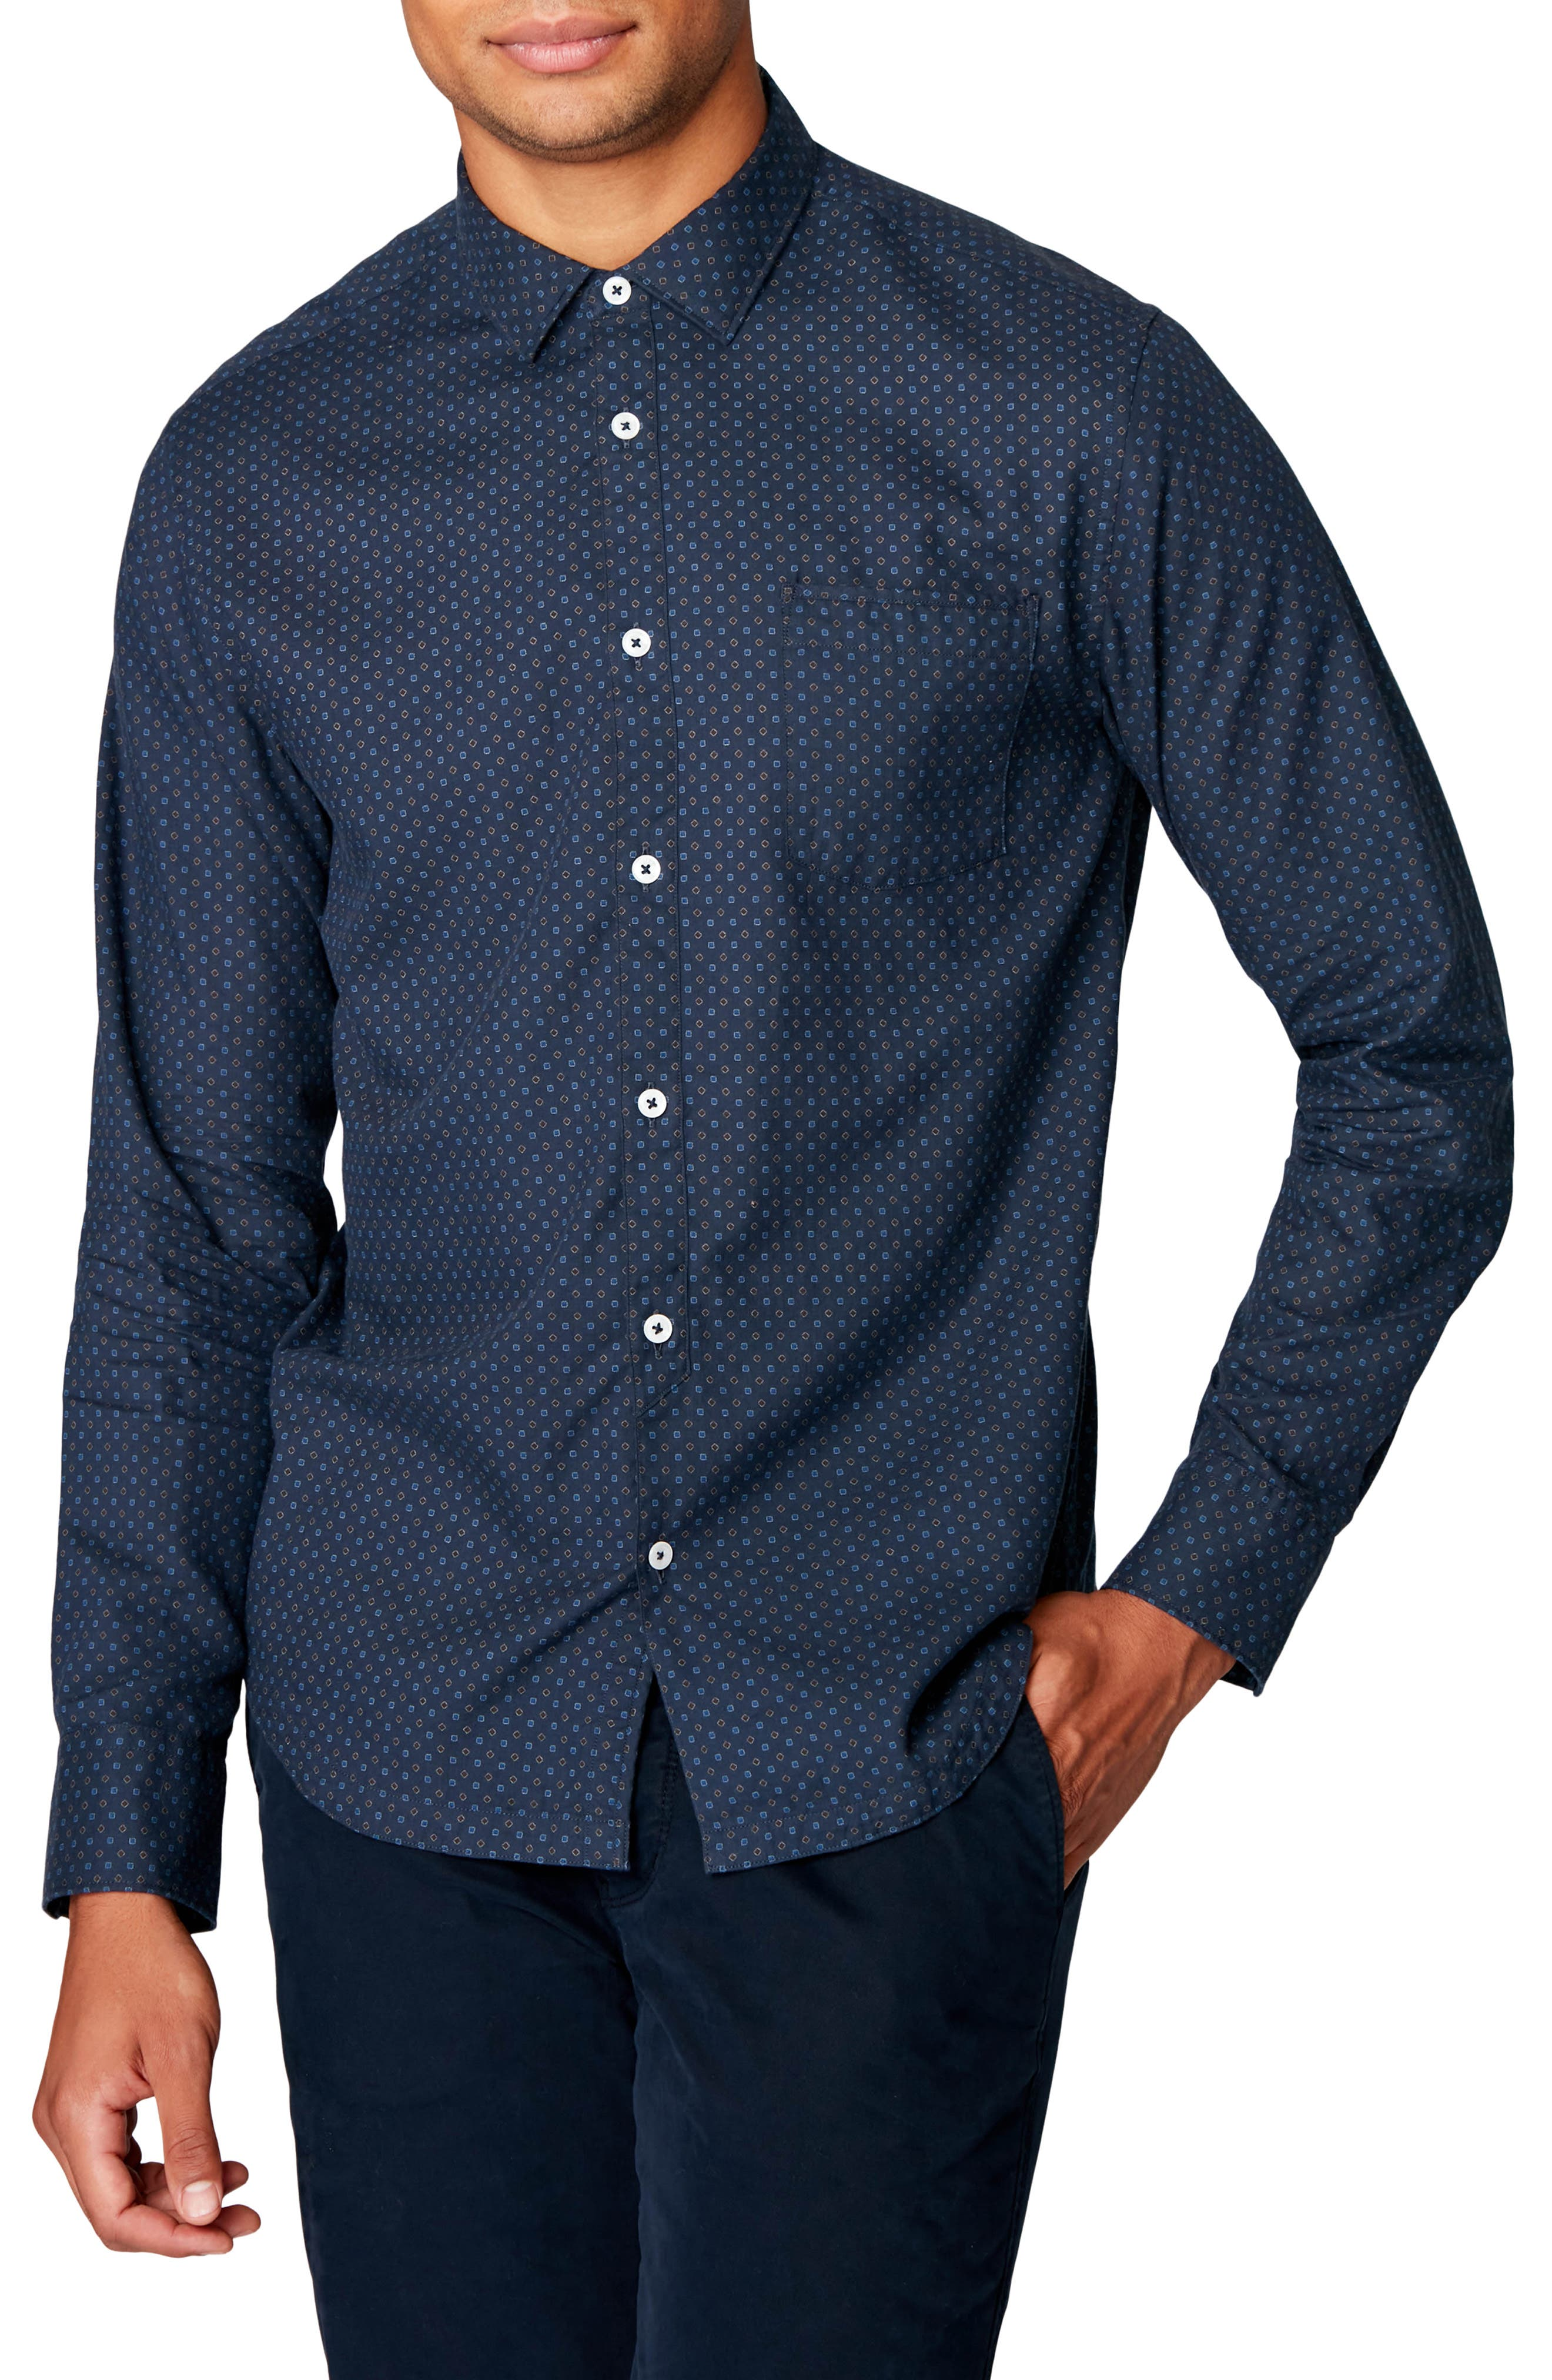 Crisp cotton patterned in a distinctive pinpoint print brings both sharp looks and casual appeal to a shirt tailored in a neat slim fit. Style Name: Good Man Brand On Point Slim Fit Button-Up Shirt. Style Number: 5906792. Available in stores.